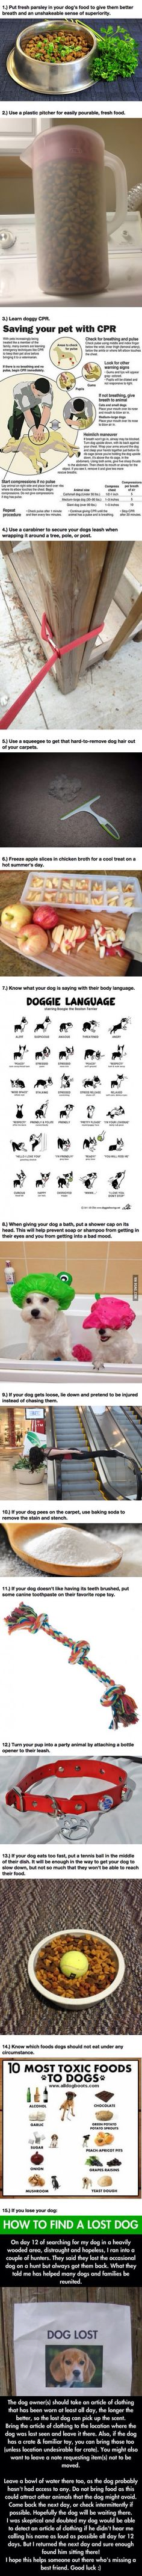 Great dog tips!